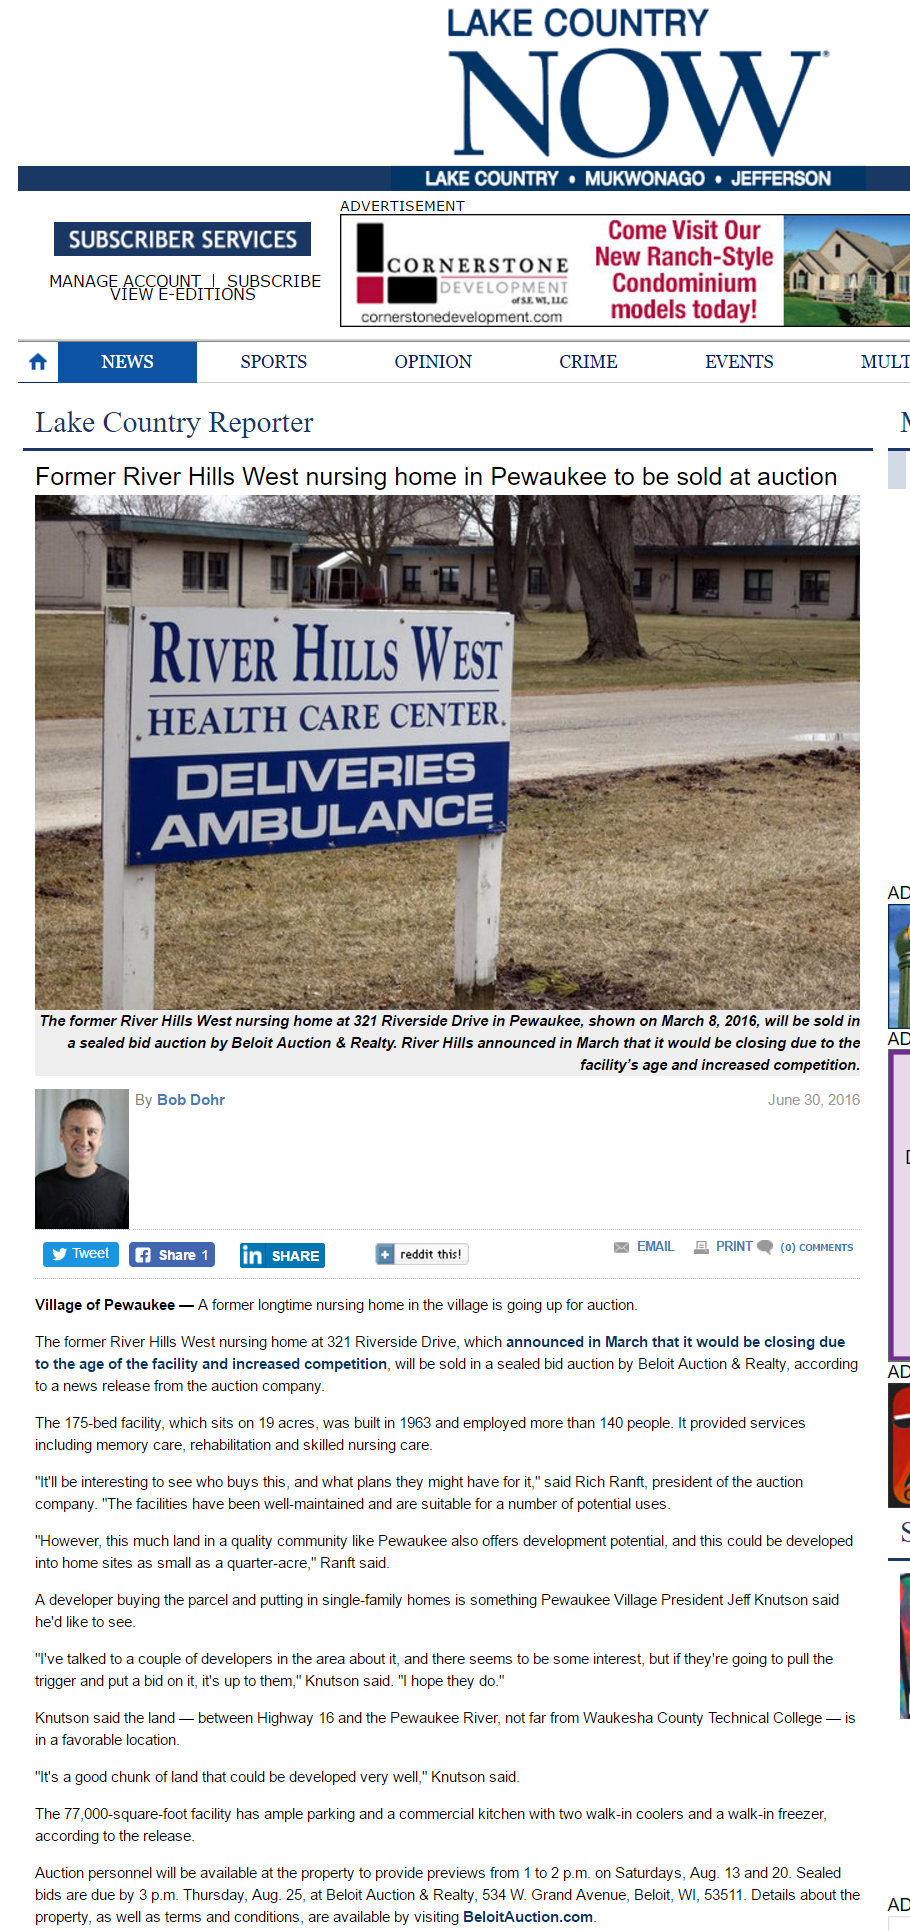 Lake Country Now Former River Hills West nursing home in Pewaukee to be sold at auction